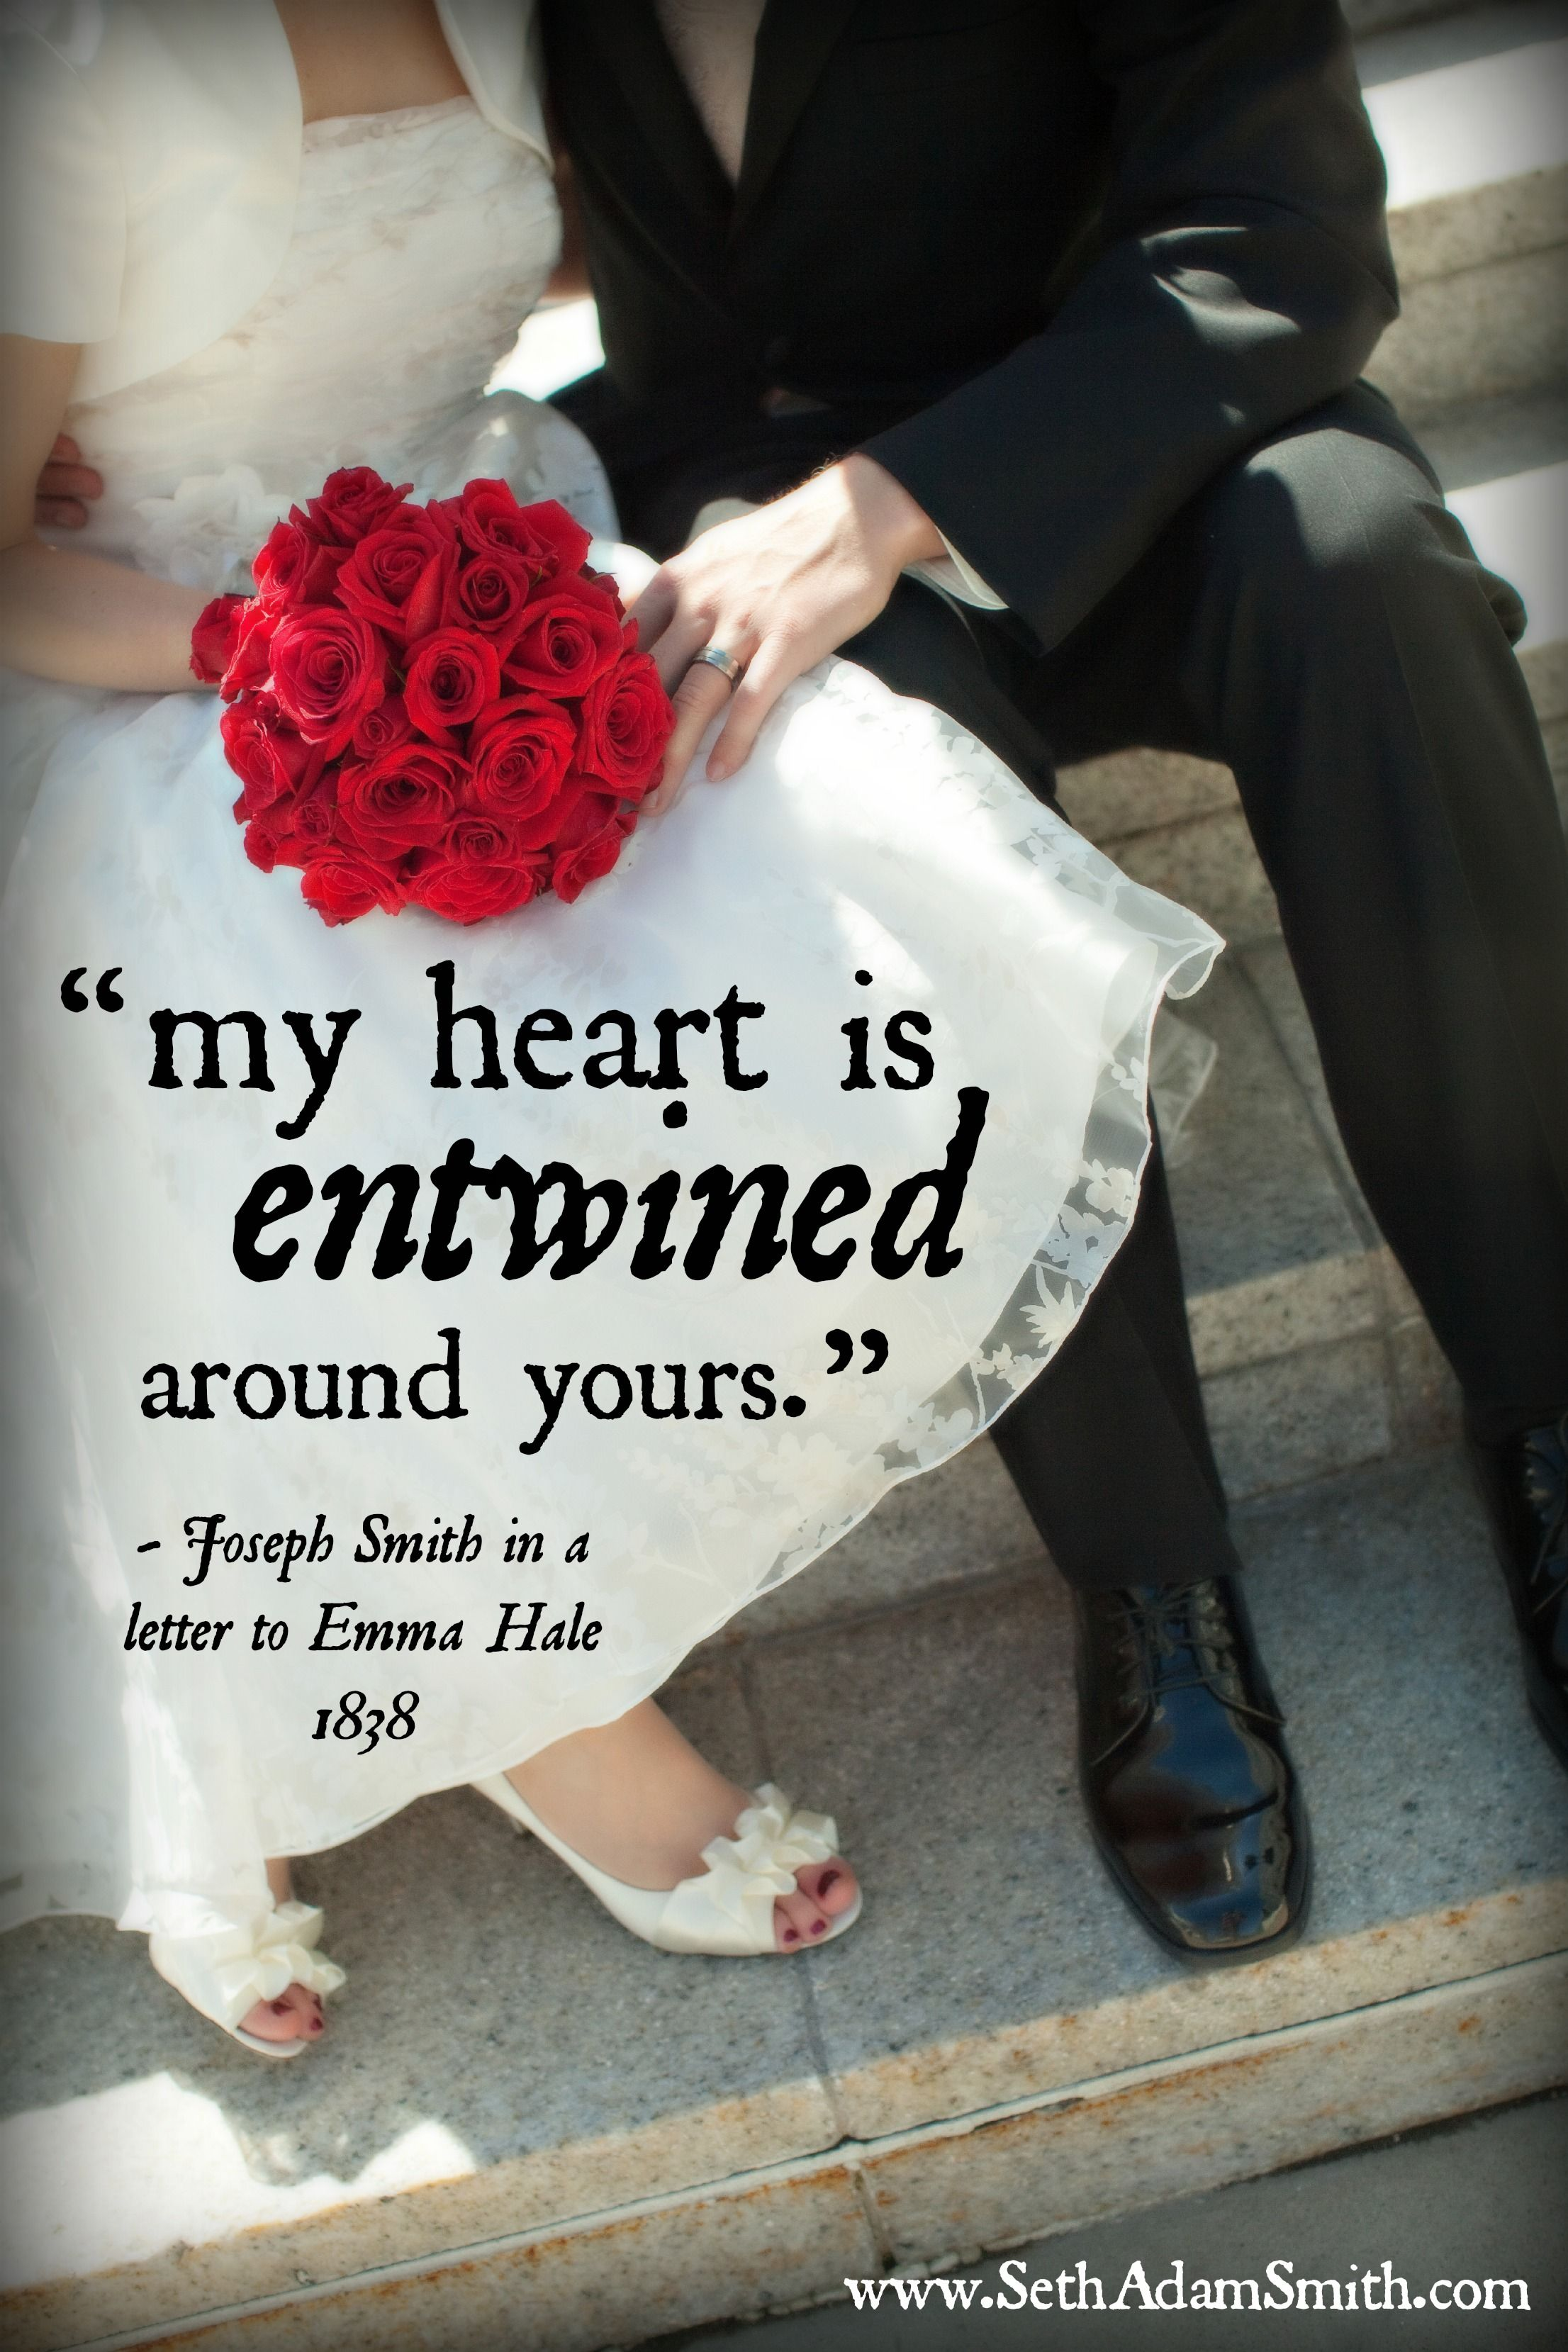 My heart is entwined around yours